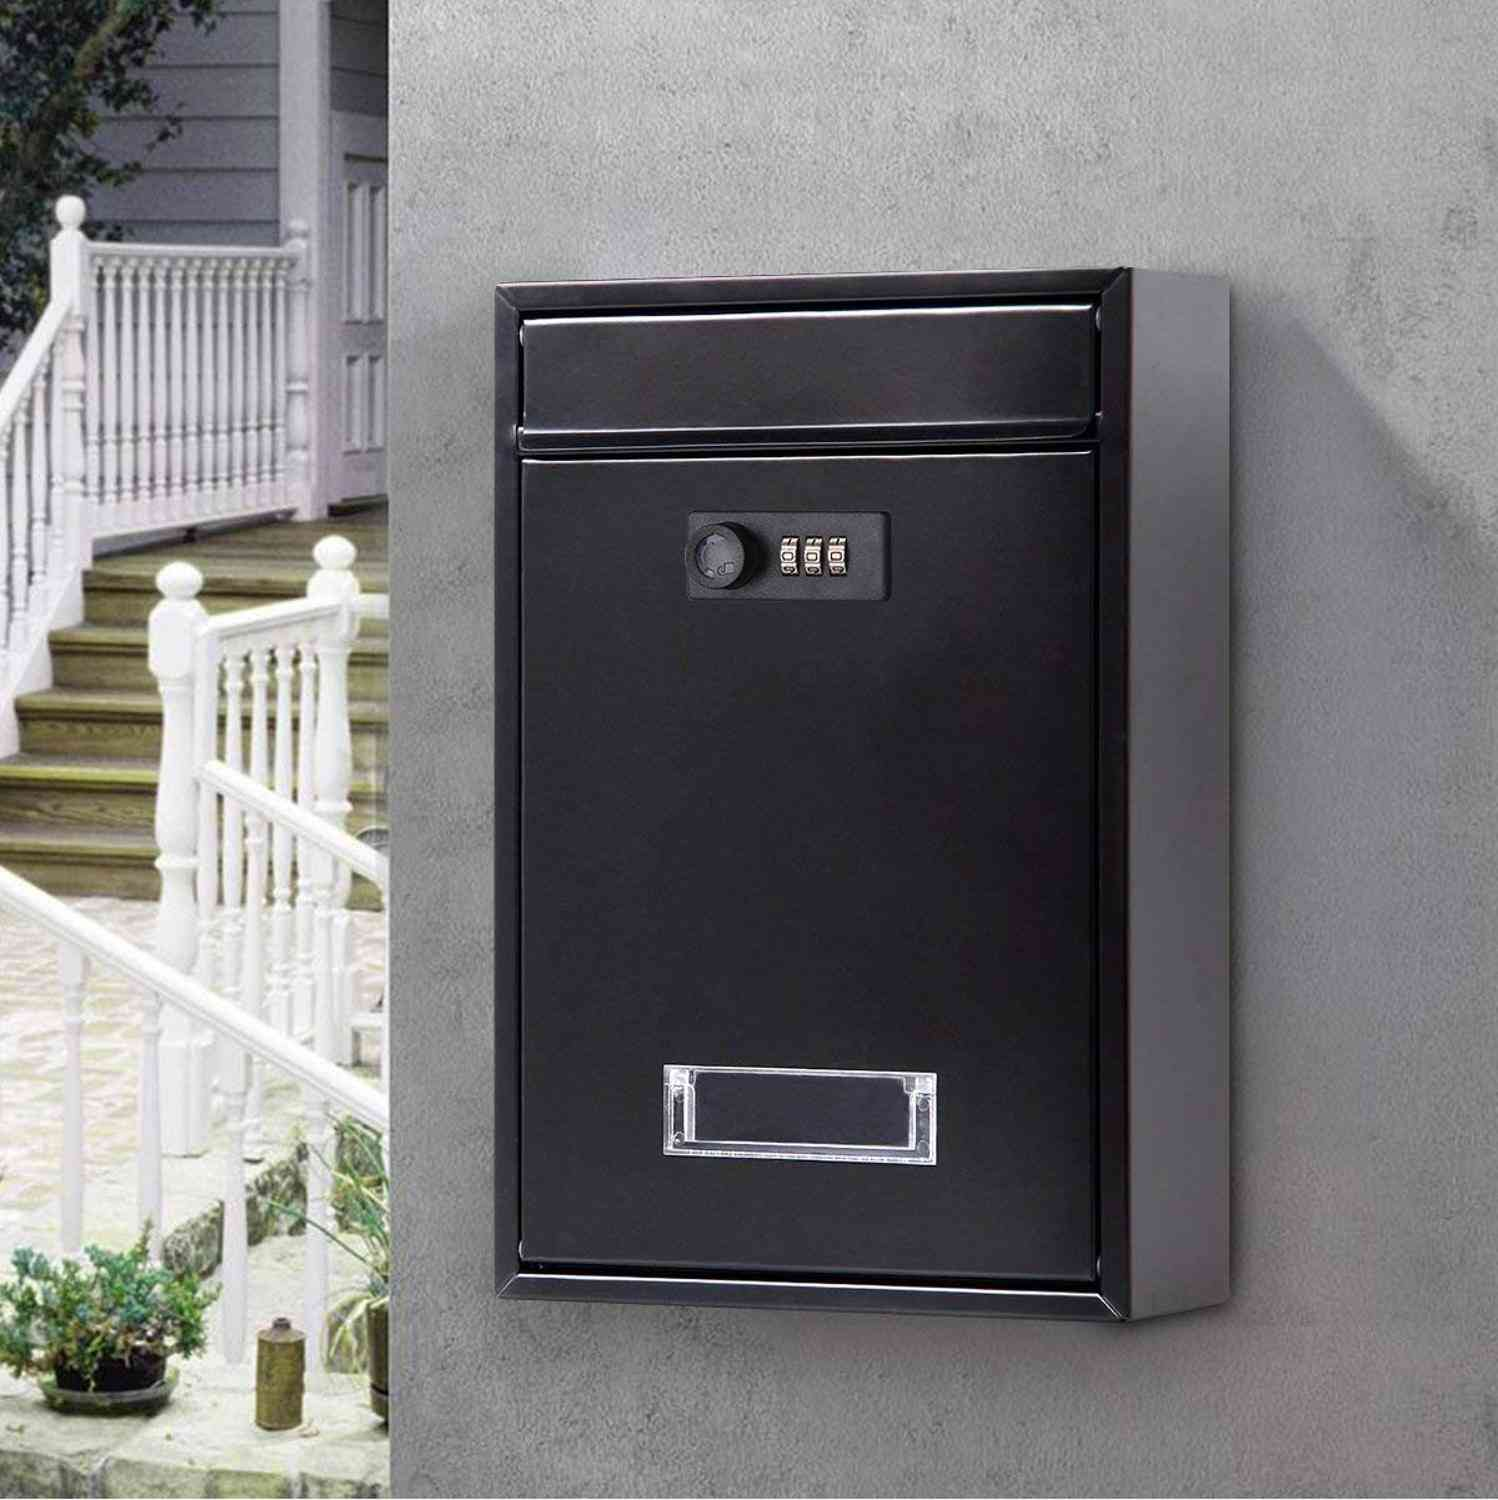 Vintage Wall Mounted Mailbox With Combination Lock Metal Coded Lock Letterbox